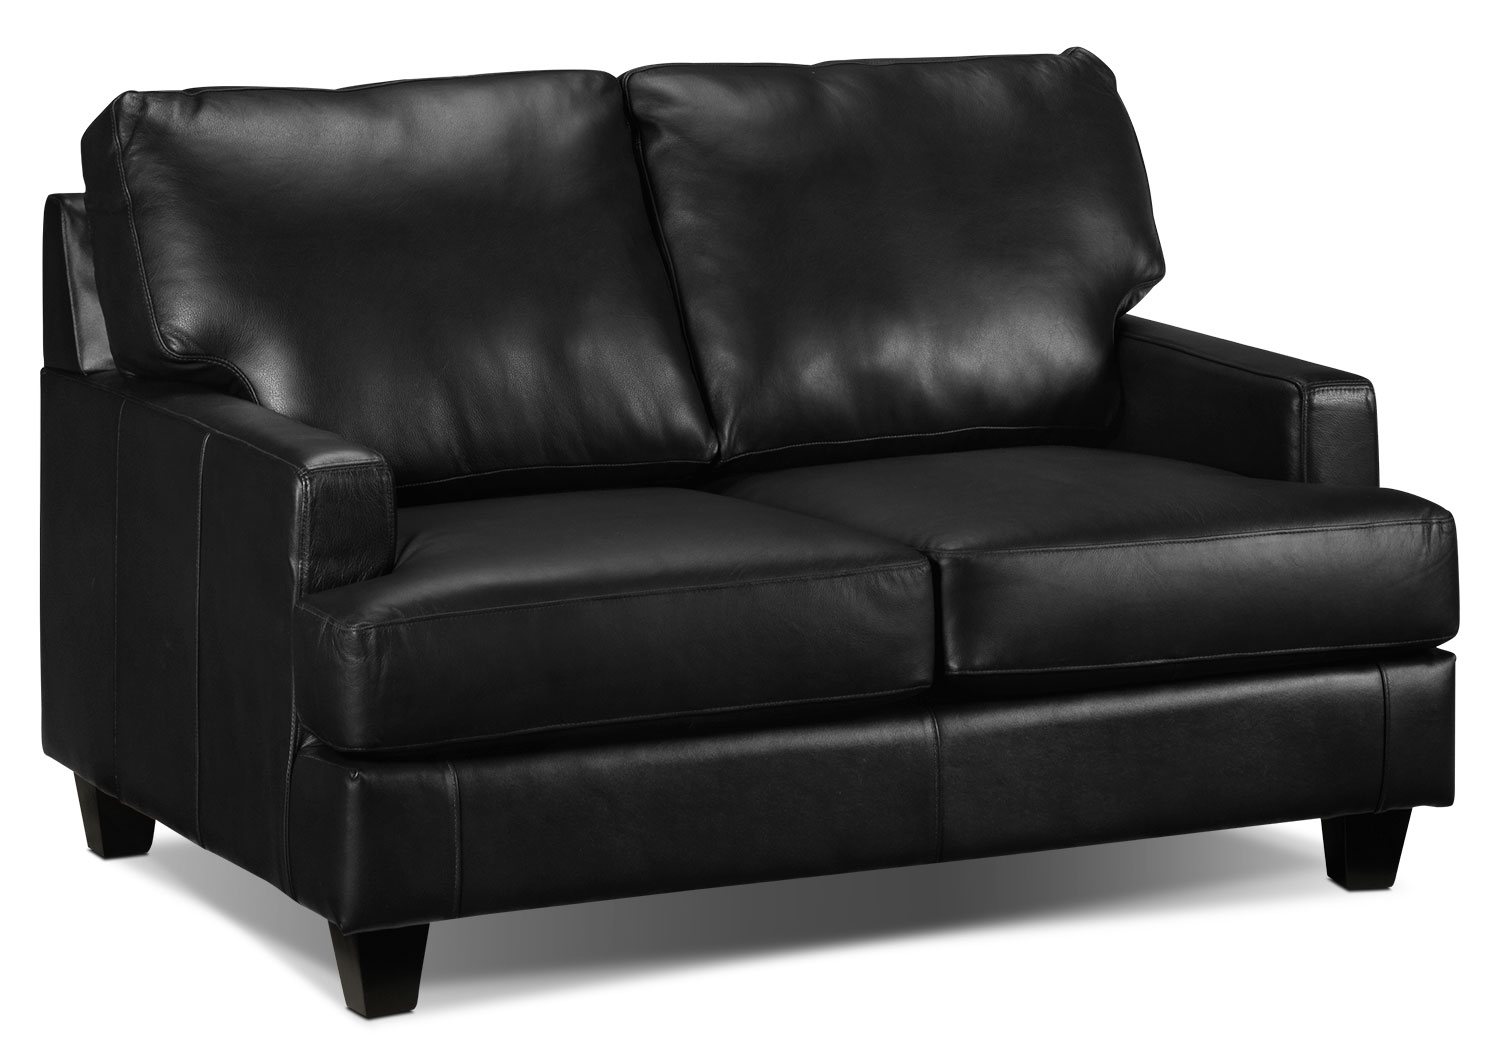 Janie Loveseat - Black